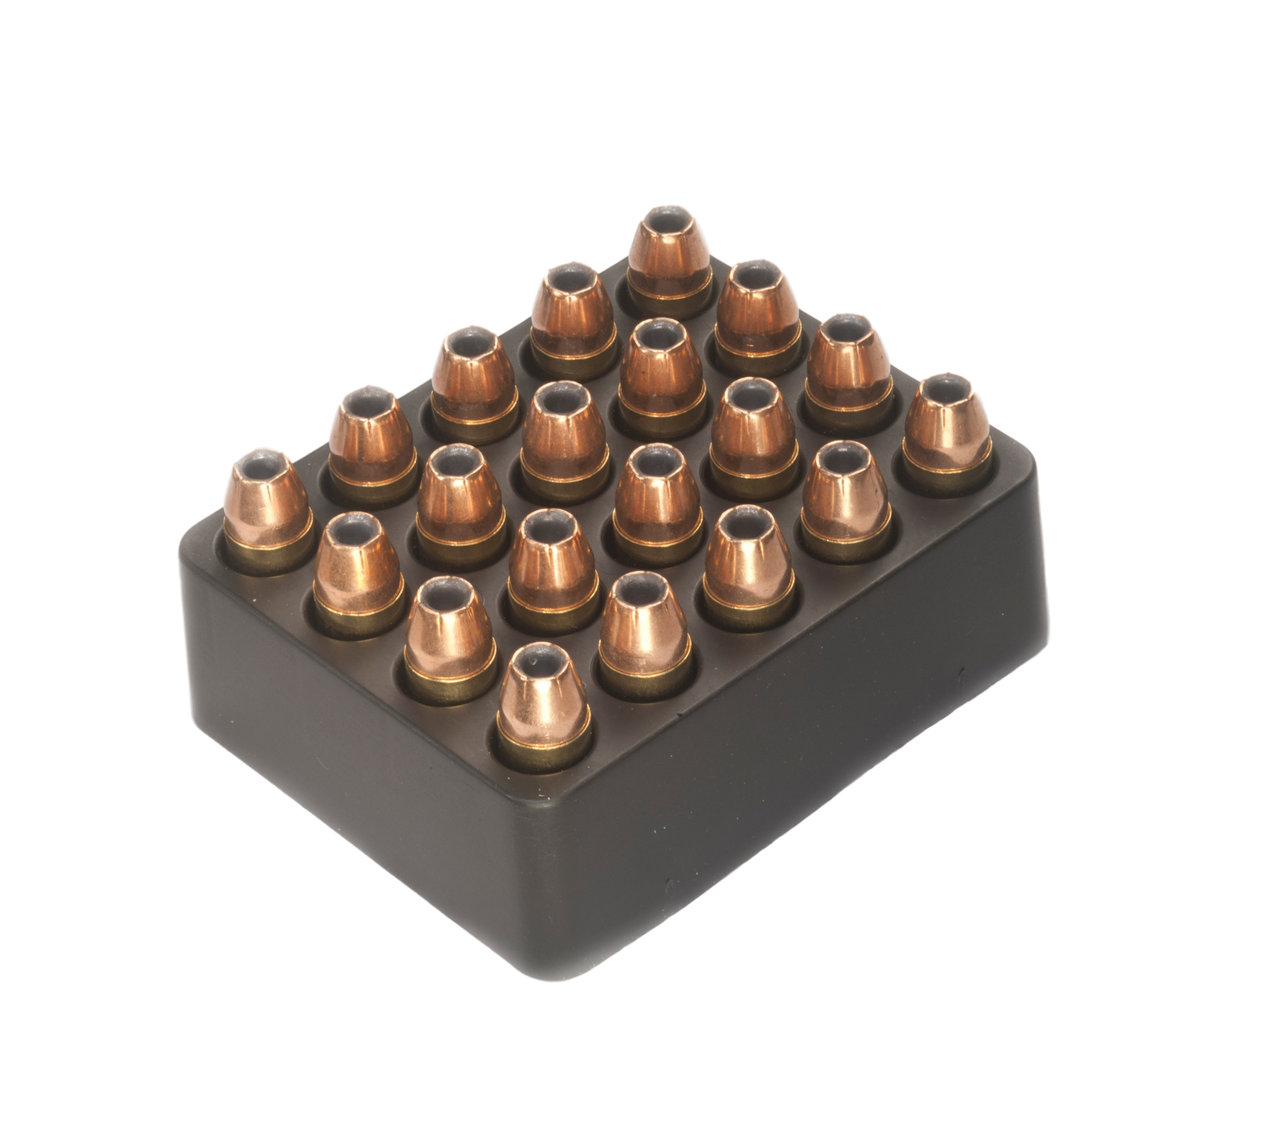 9mm Luger +P 115 gr. JHP (20 count box)